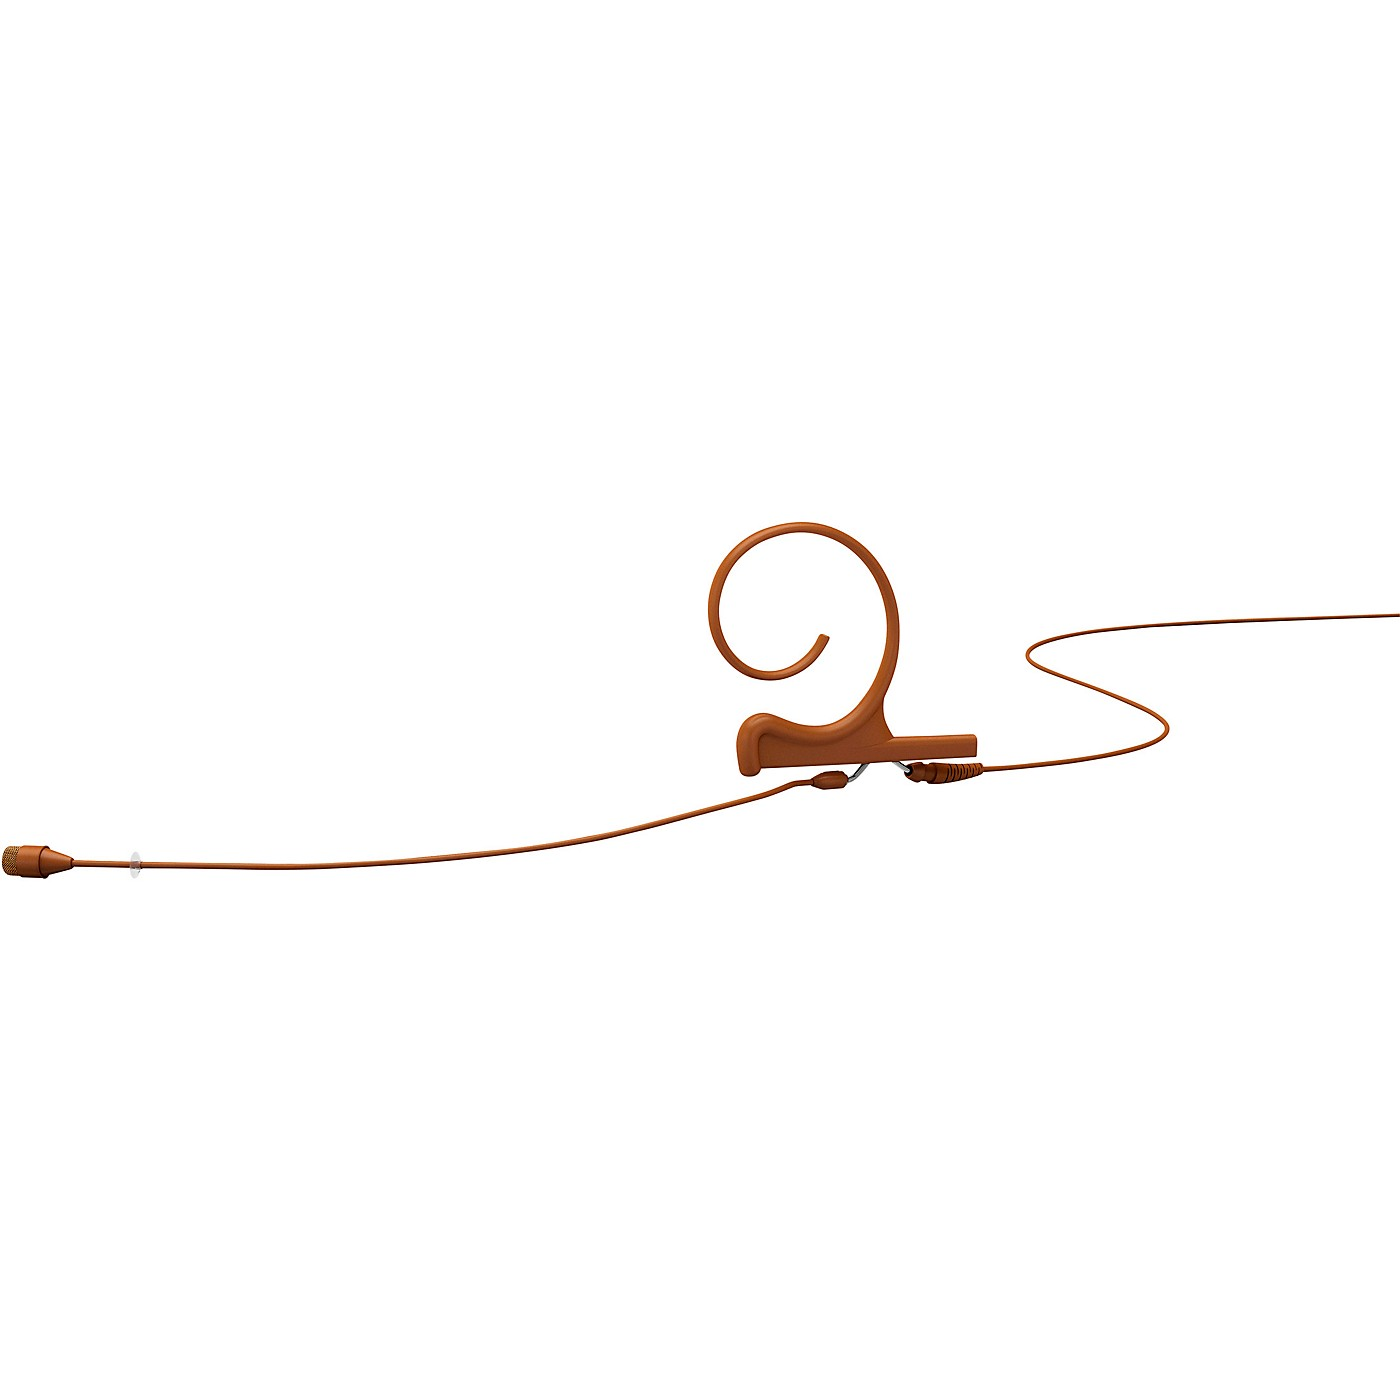 DPA Microphones d:fine FIO66 Omnidirectional Headset Microphone—Single Ear, 90mm Boom, Brown thumbnail